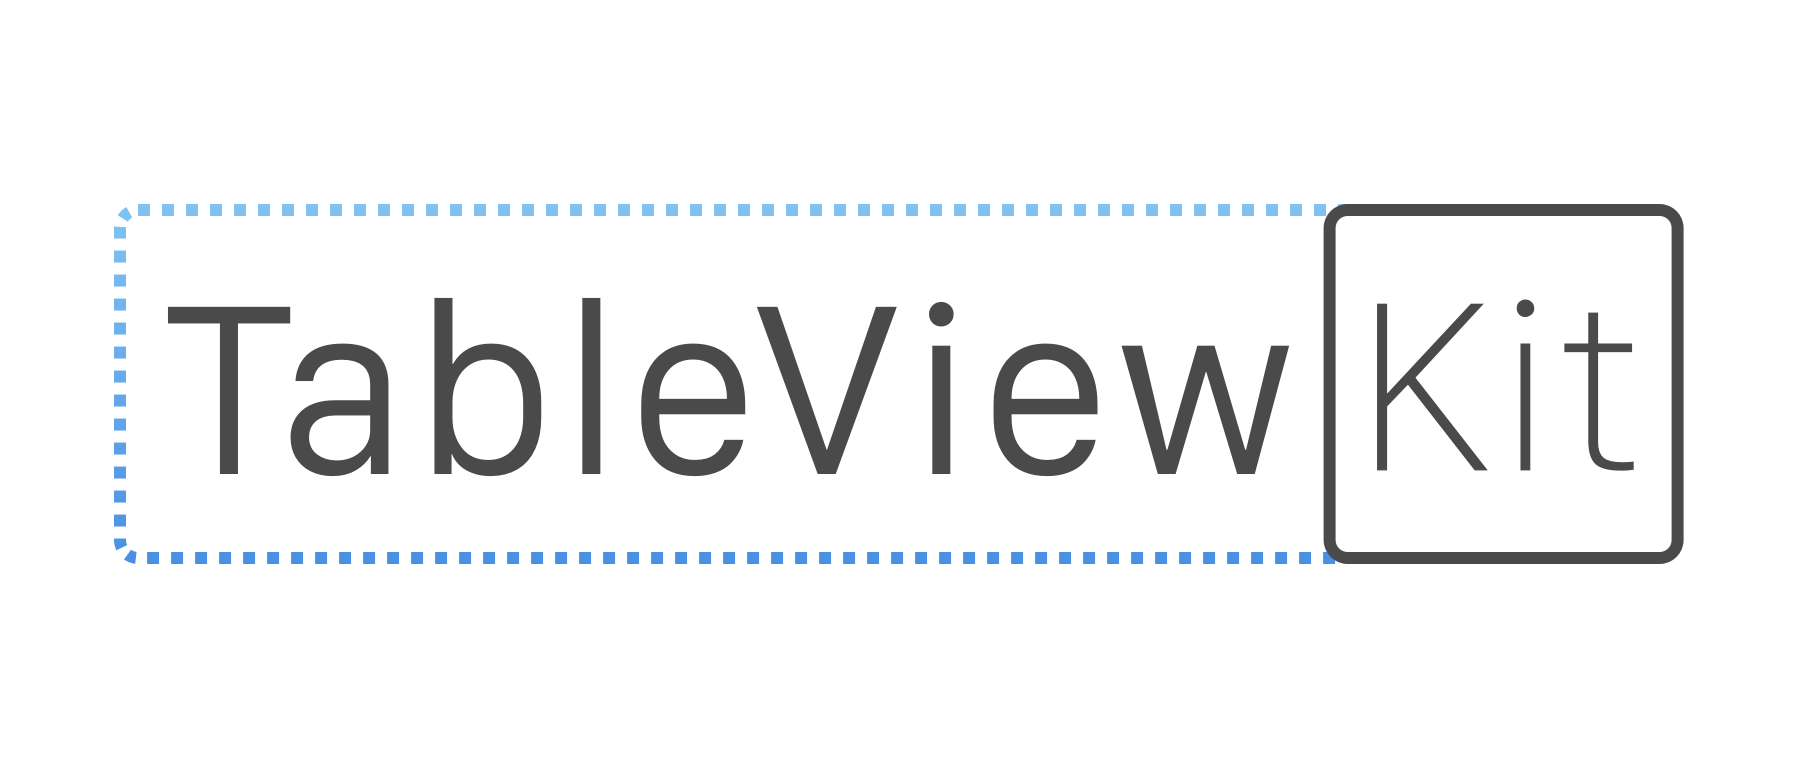 TableViewKit